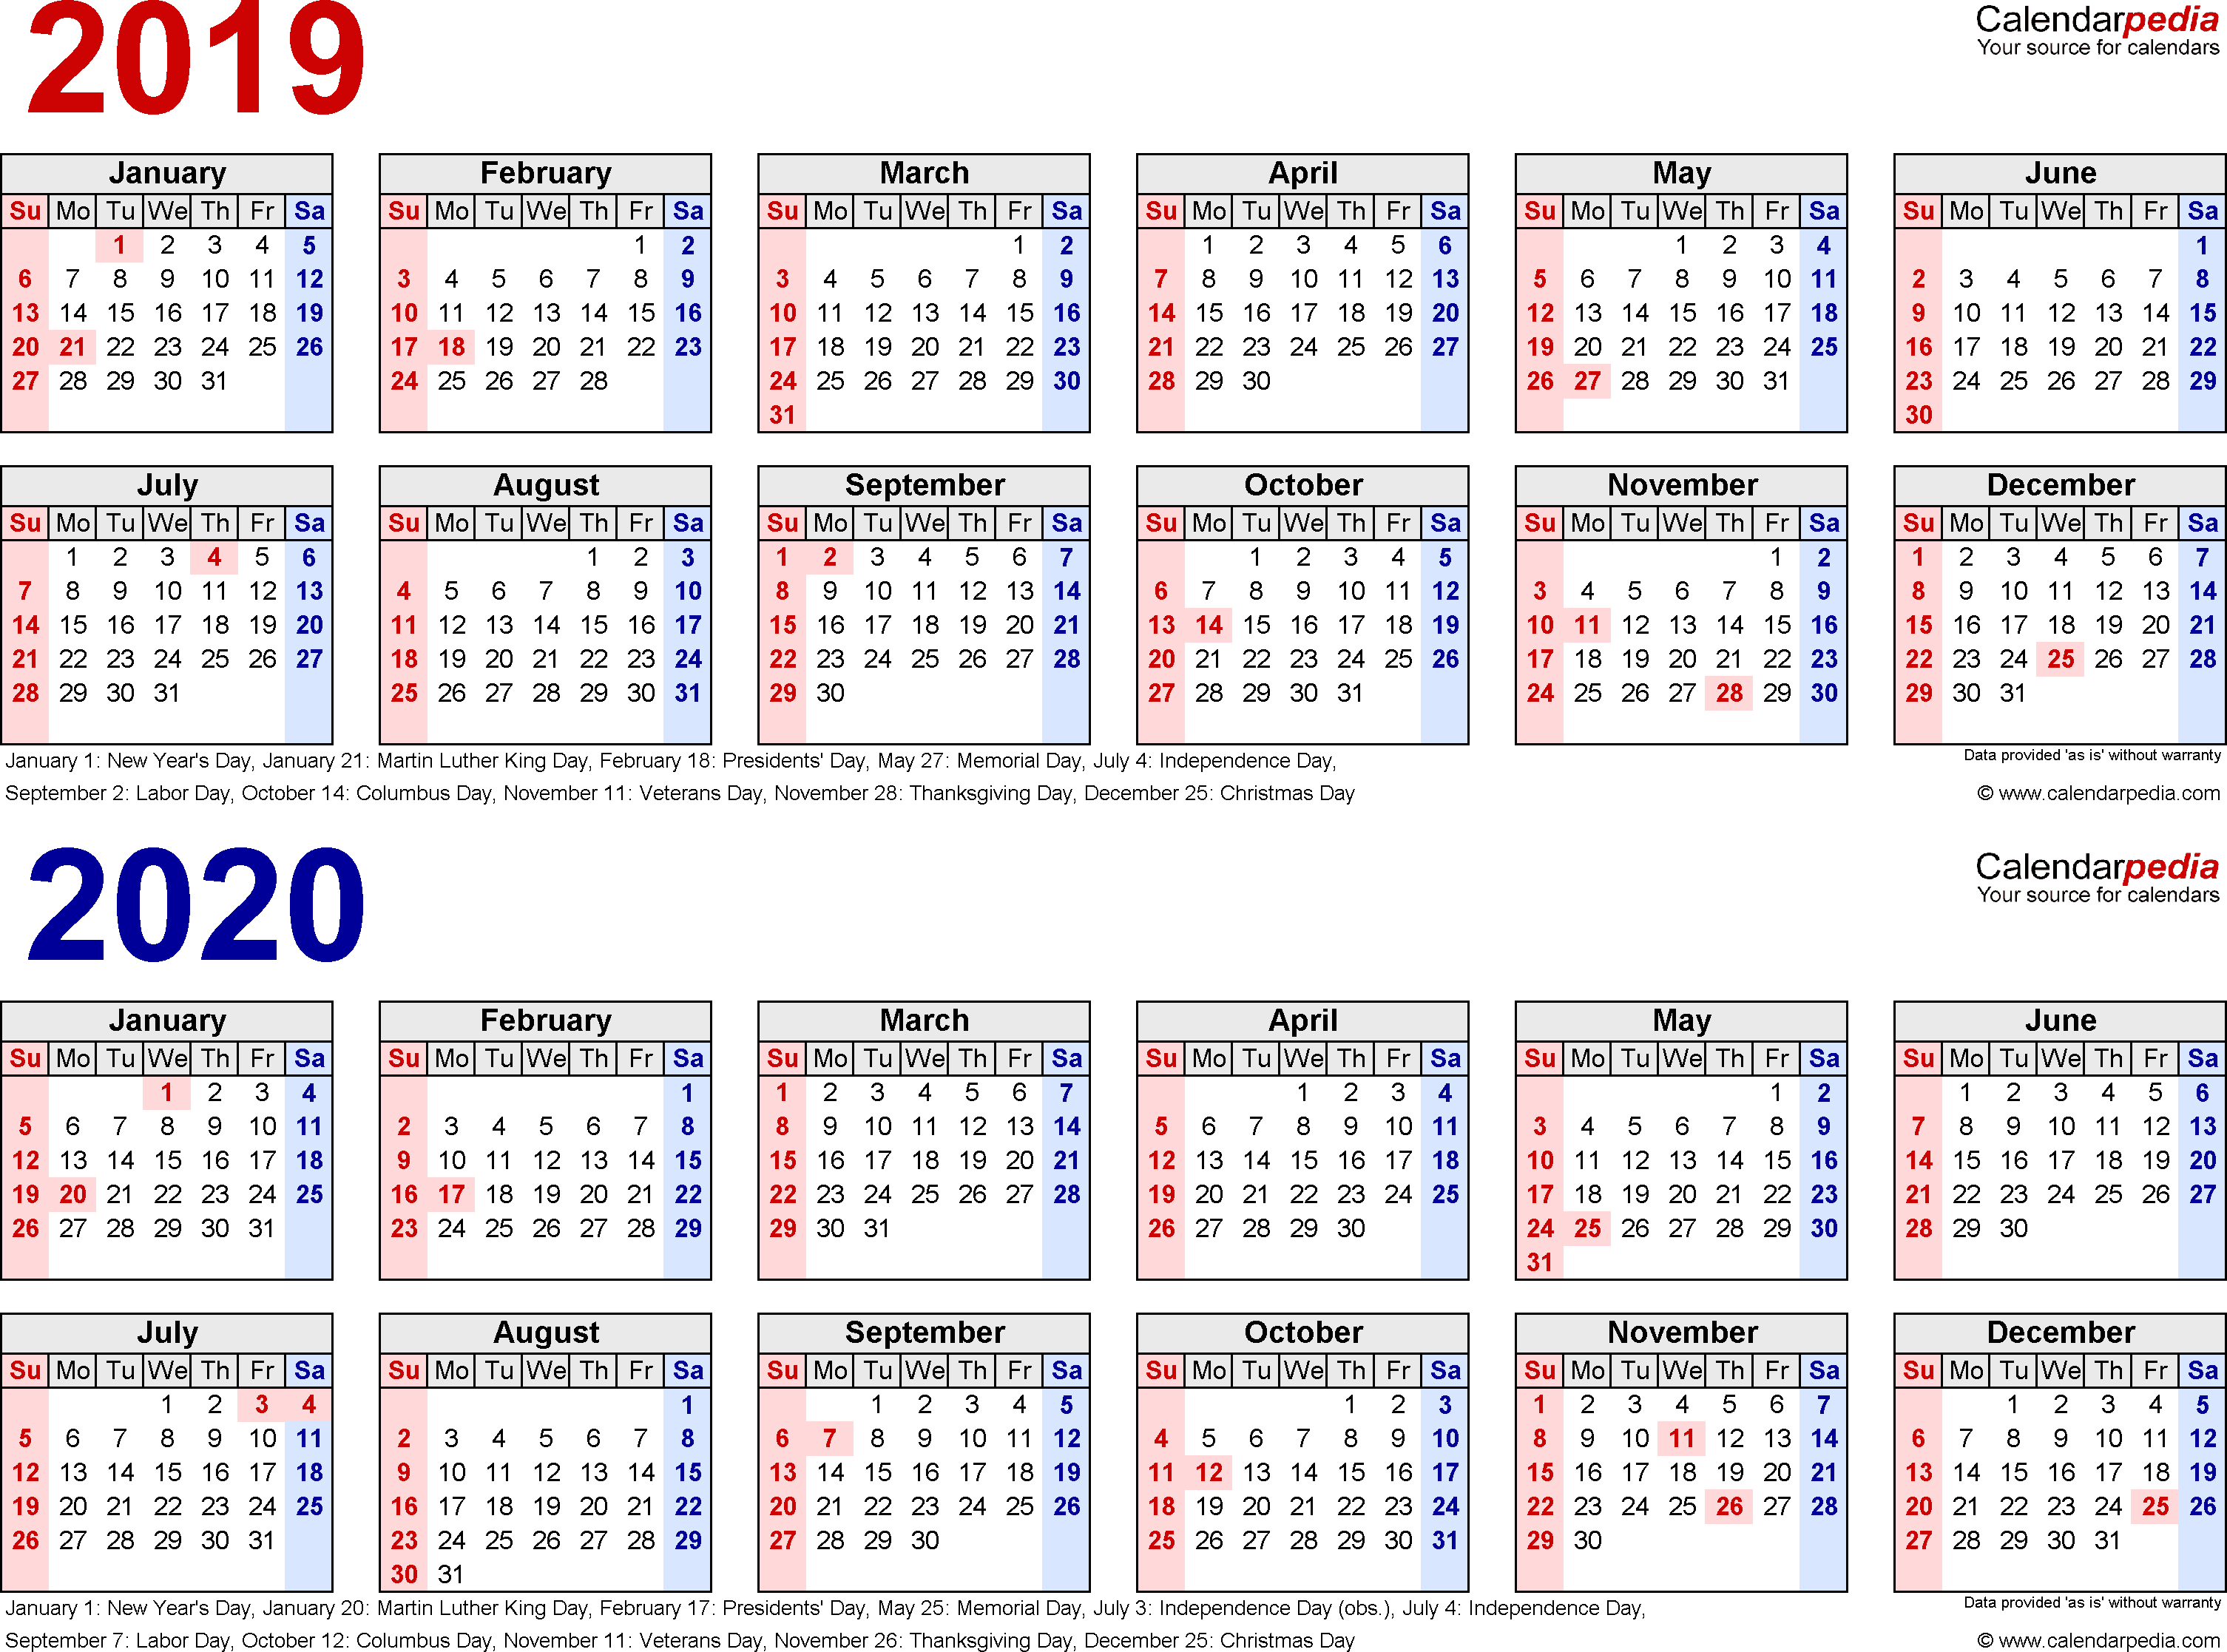 2019-2020 Calendar - Free Printable Two-Year Pdf Calendars inside Year Long Calendar For 2019-2020 Printable